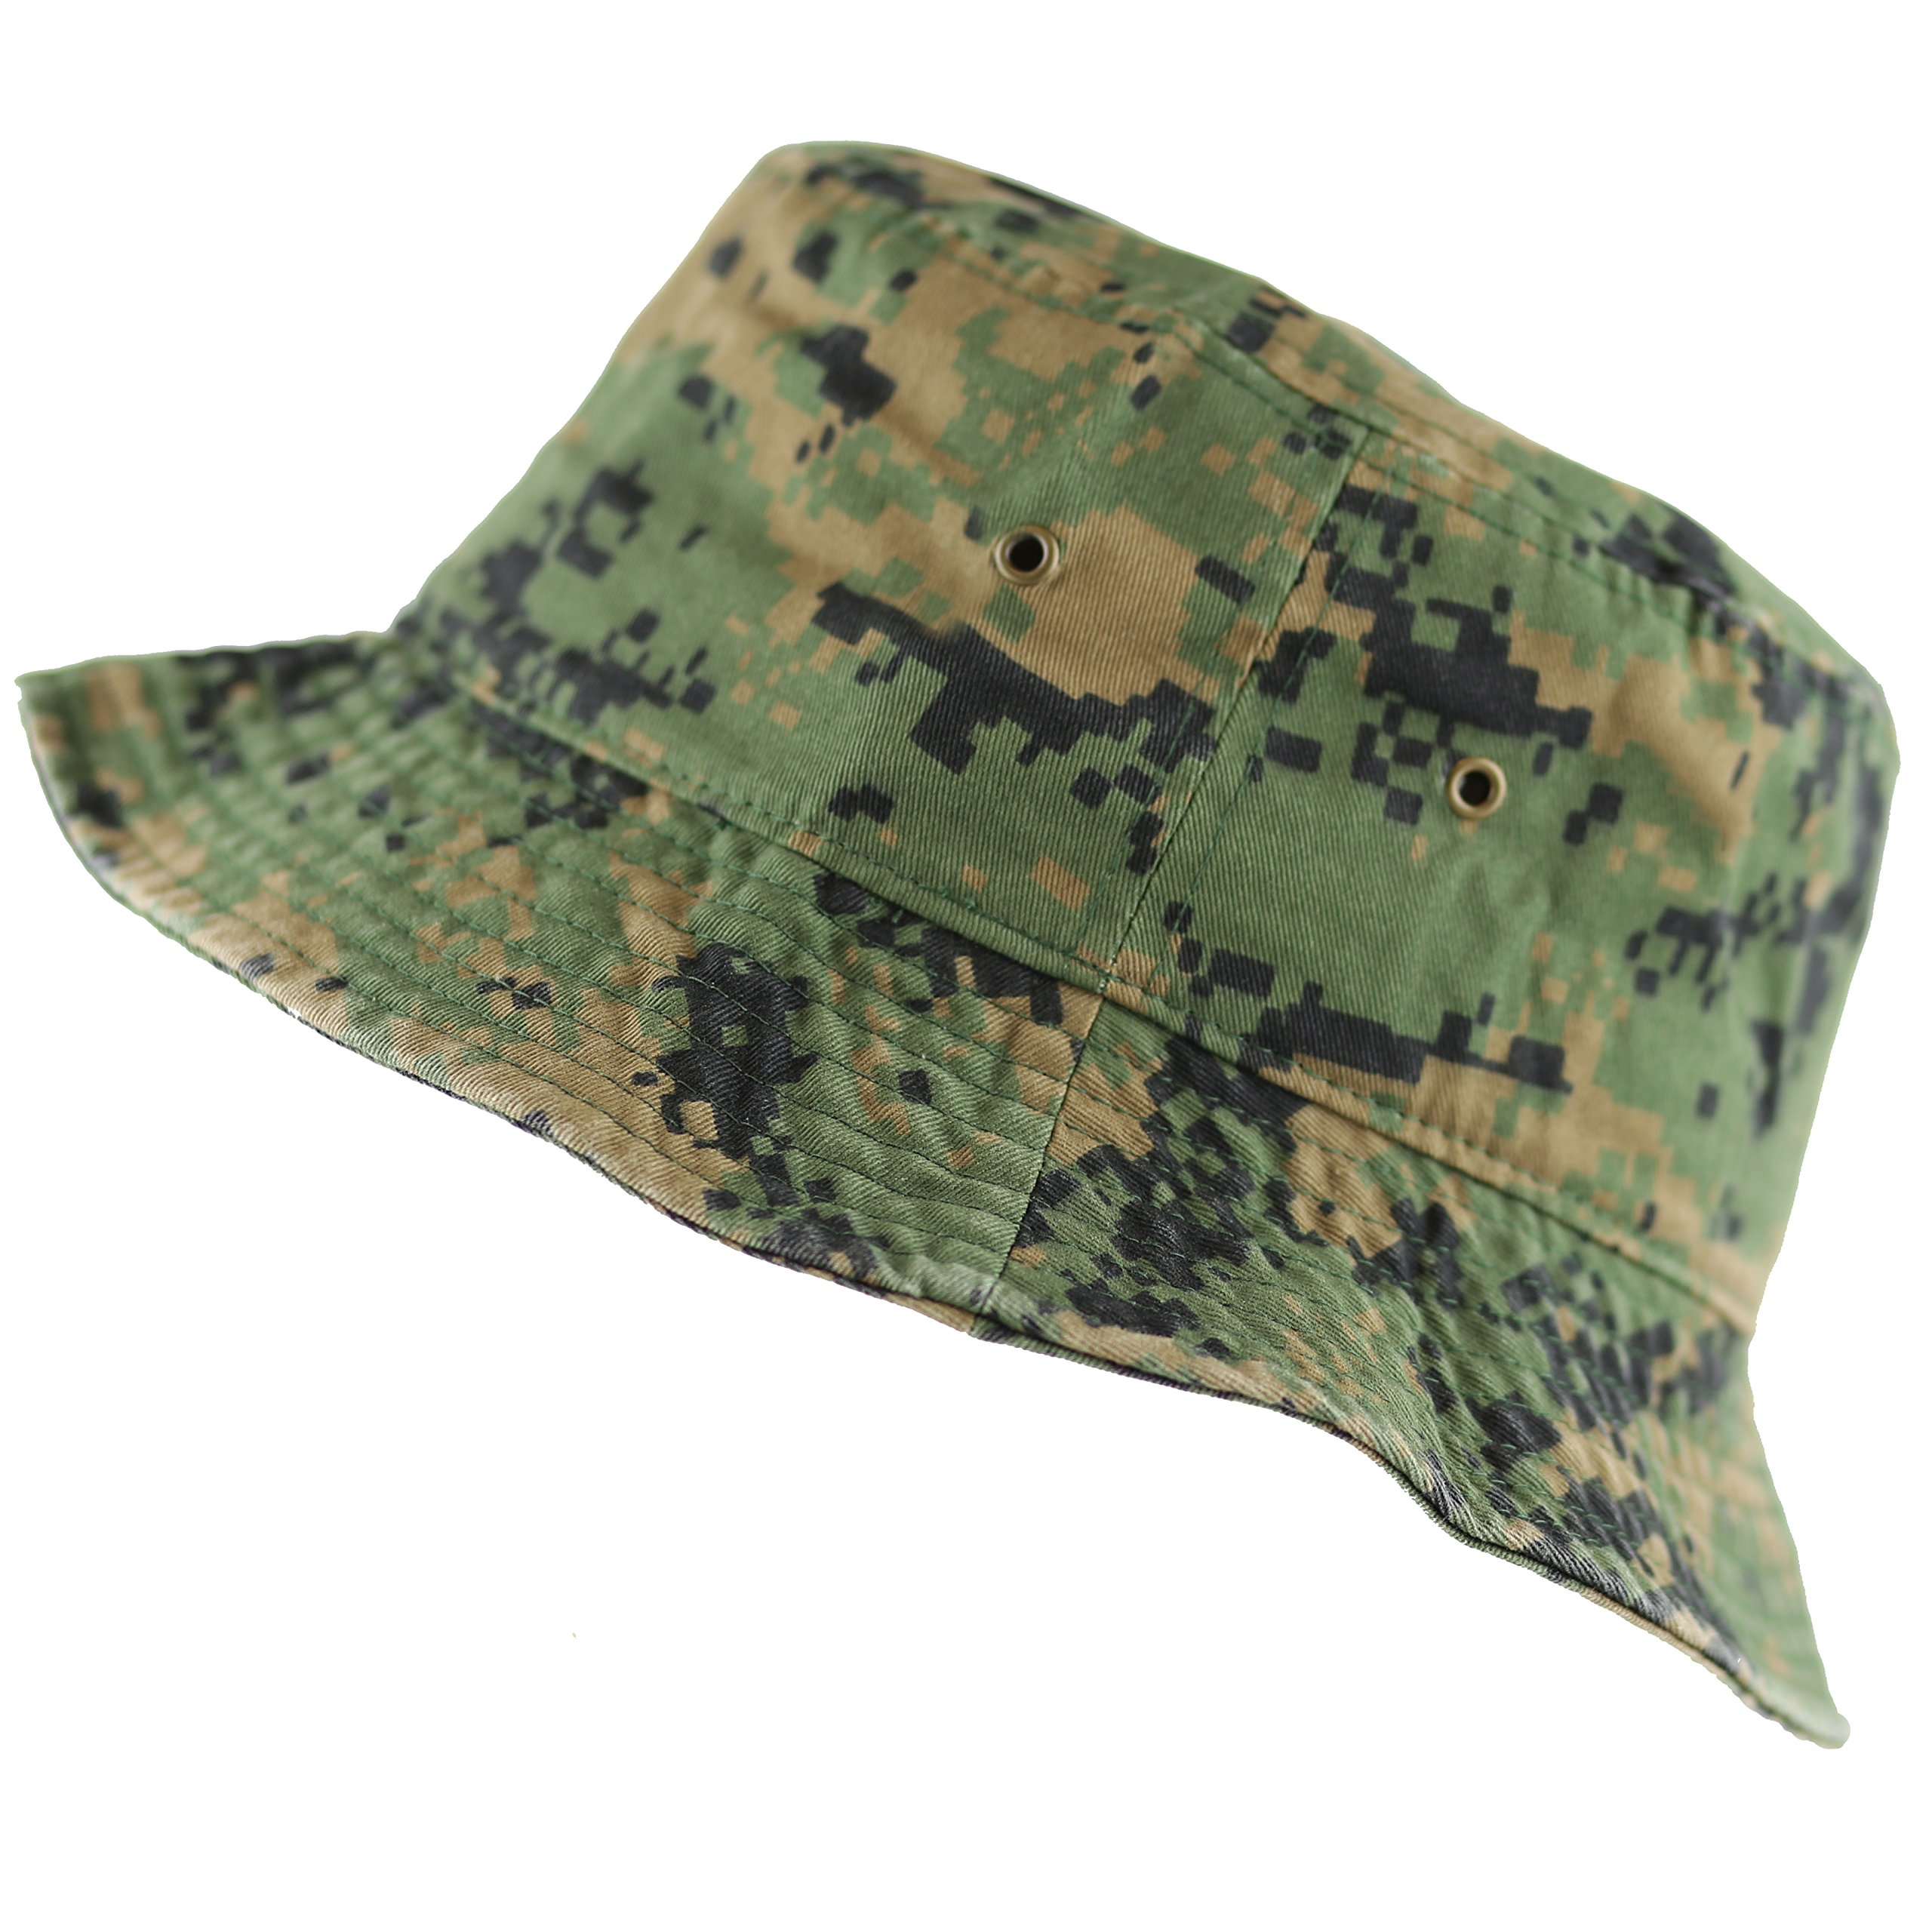 THE HAT DEPOT 300N Unisex 100% Cotton Packable Summer Travel Bucket Hat (S/M, Digital Camo)